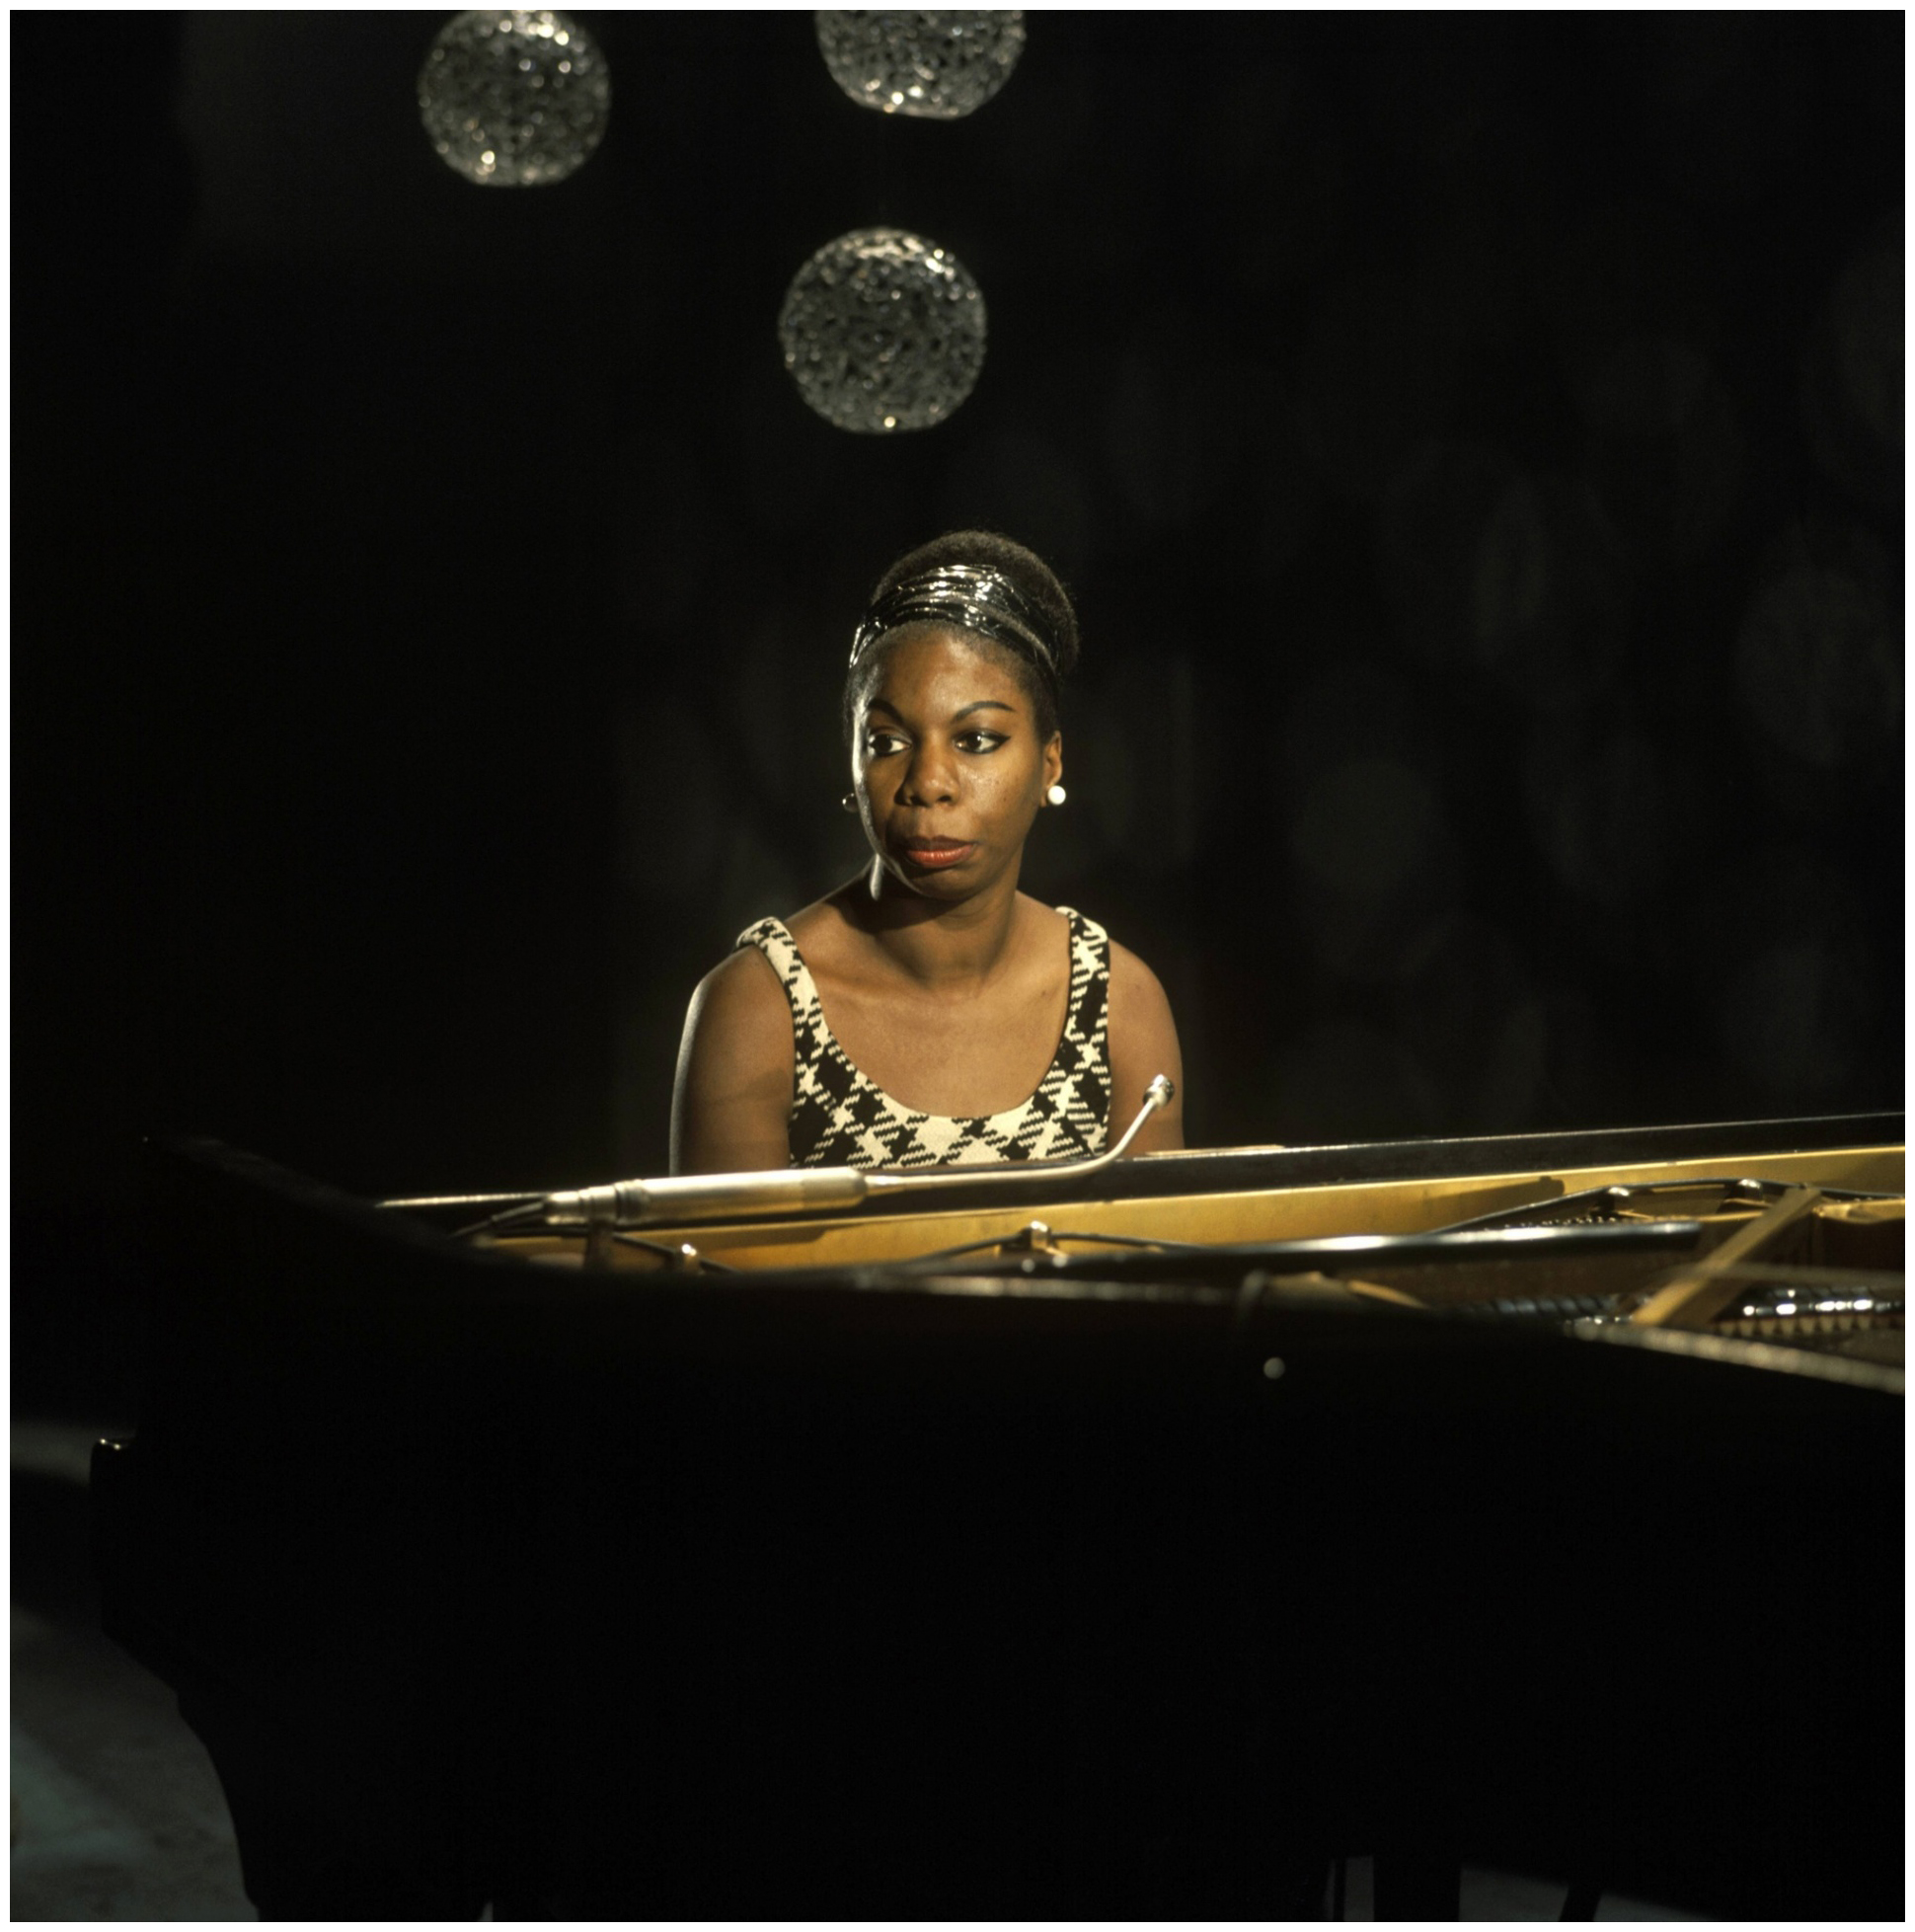 nina-simone-pauses-in-a-performance-at-bbc-tv-centre-in-1968